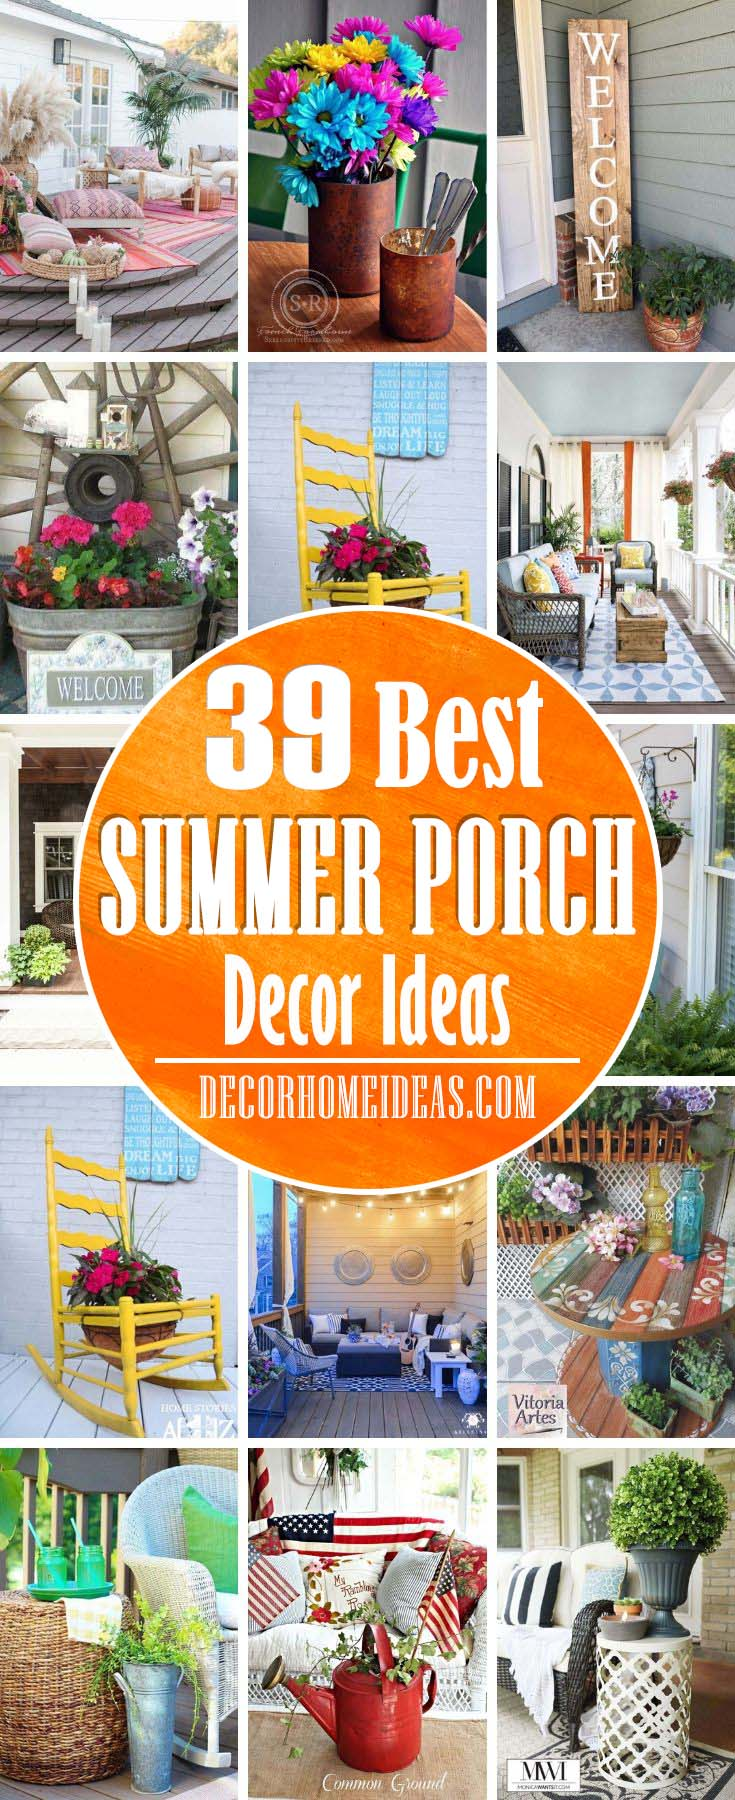 Best Summer Porch Decor Ideas. There is no better place to sit and relax as your front porch. These ideas can help you to make your porch an inviting and welcoming area! #porch #summer #decorhomeideas